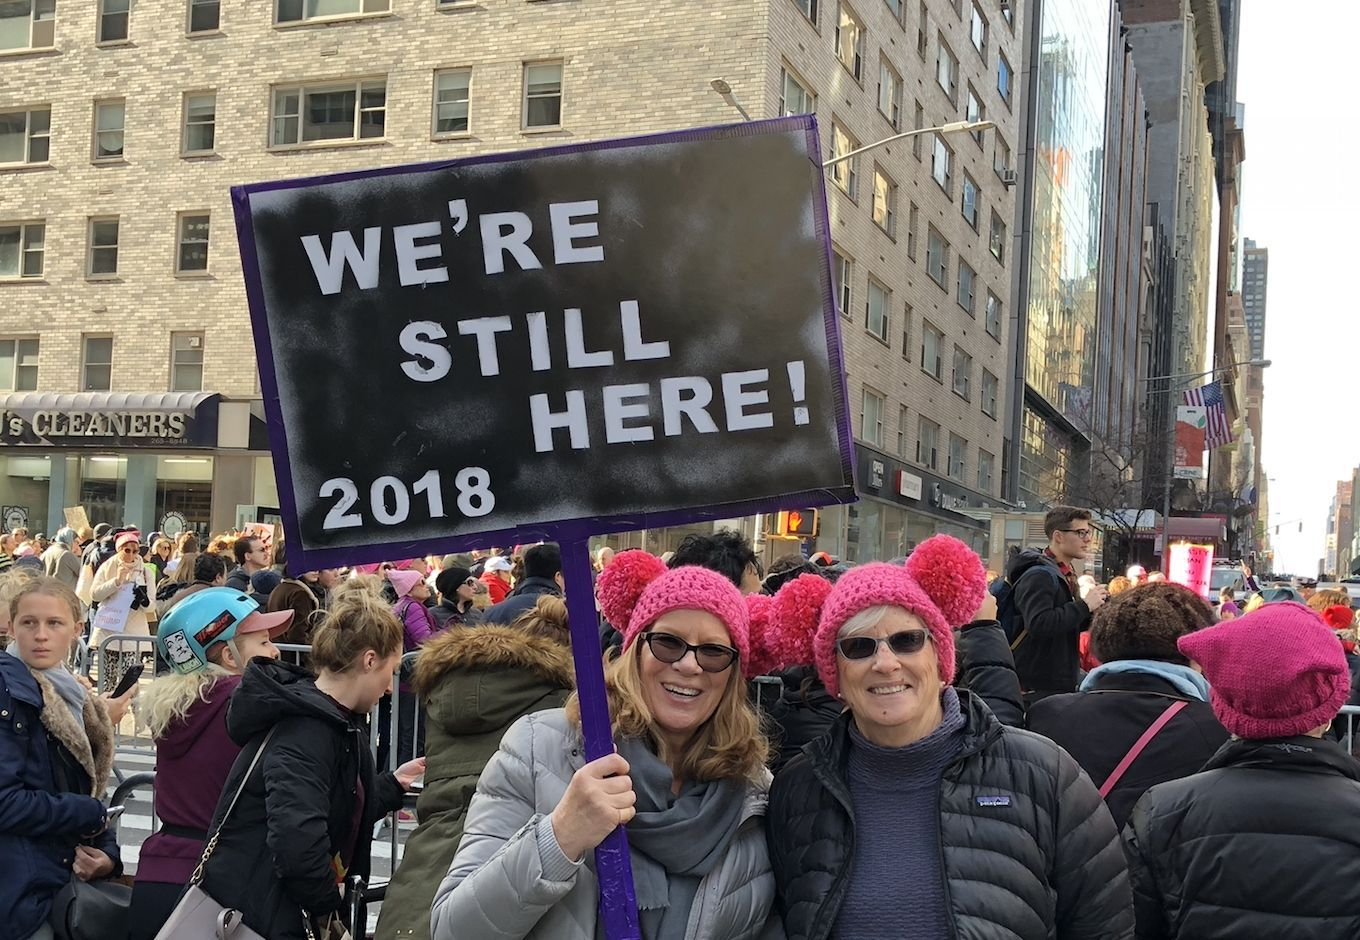 The women who marched in 2018 Insurance quotes, Womens